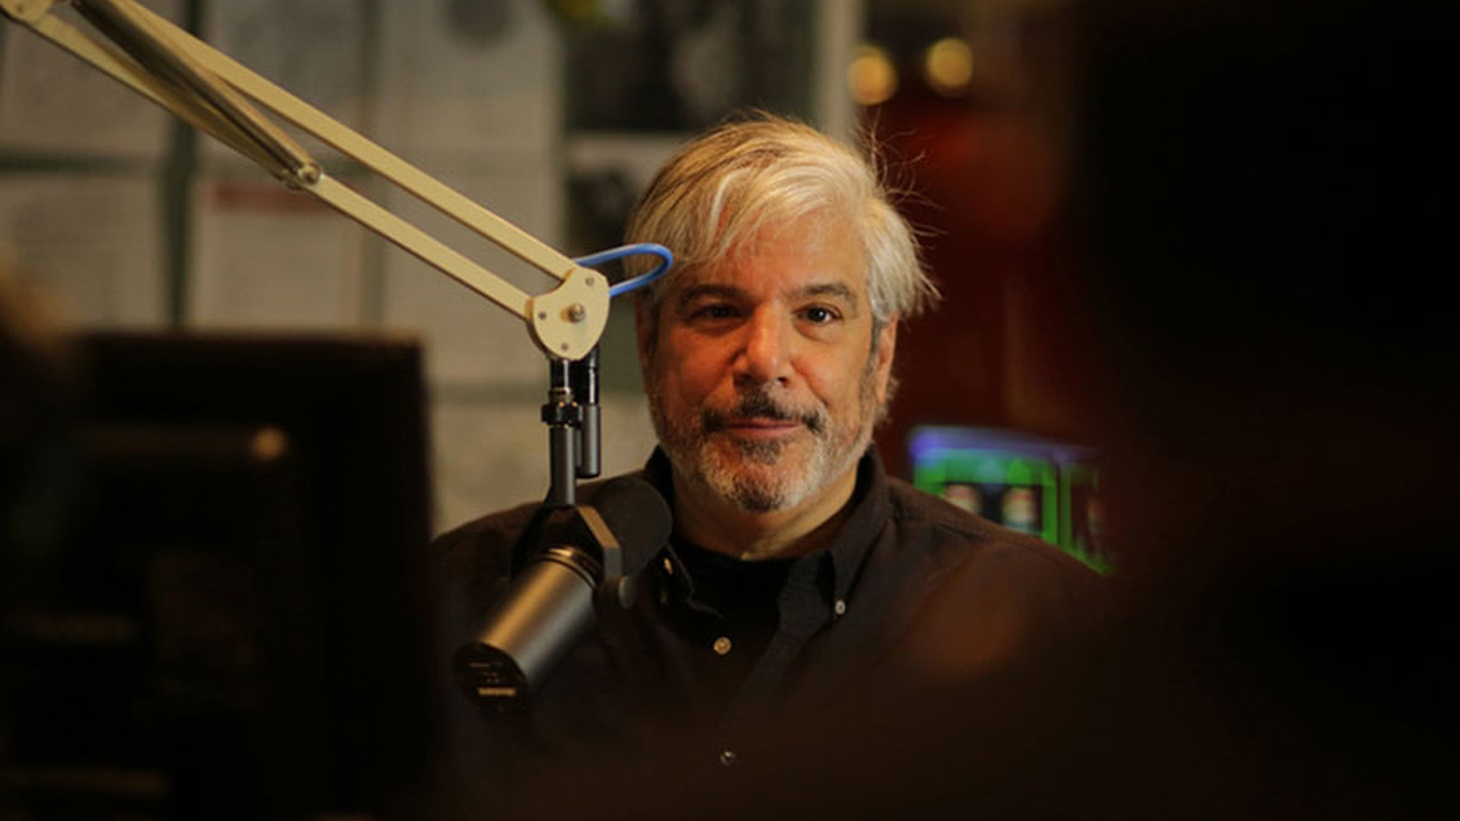 Music supervisor and KCRW DJ Gary Calamar not only plays the hits on the air, but creates them as well!